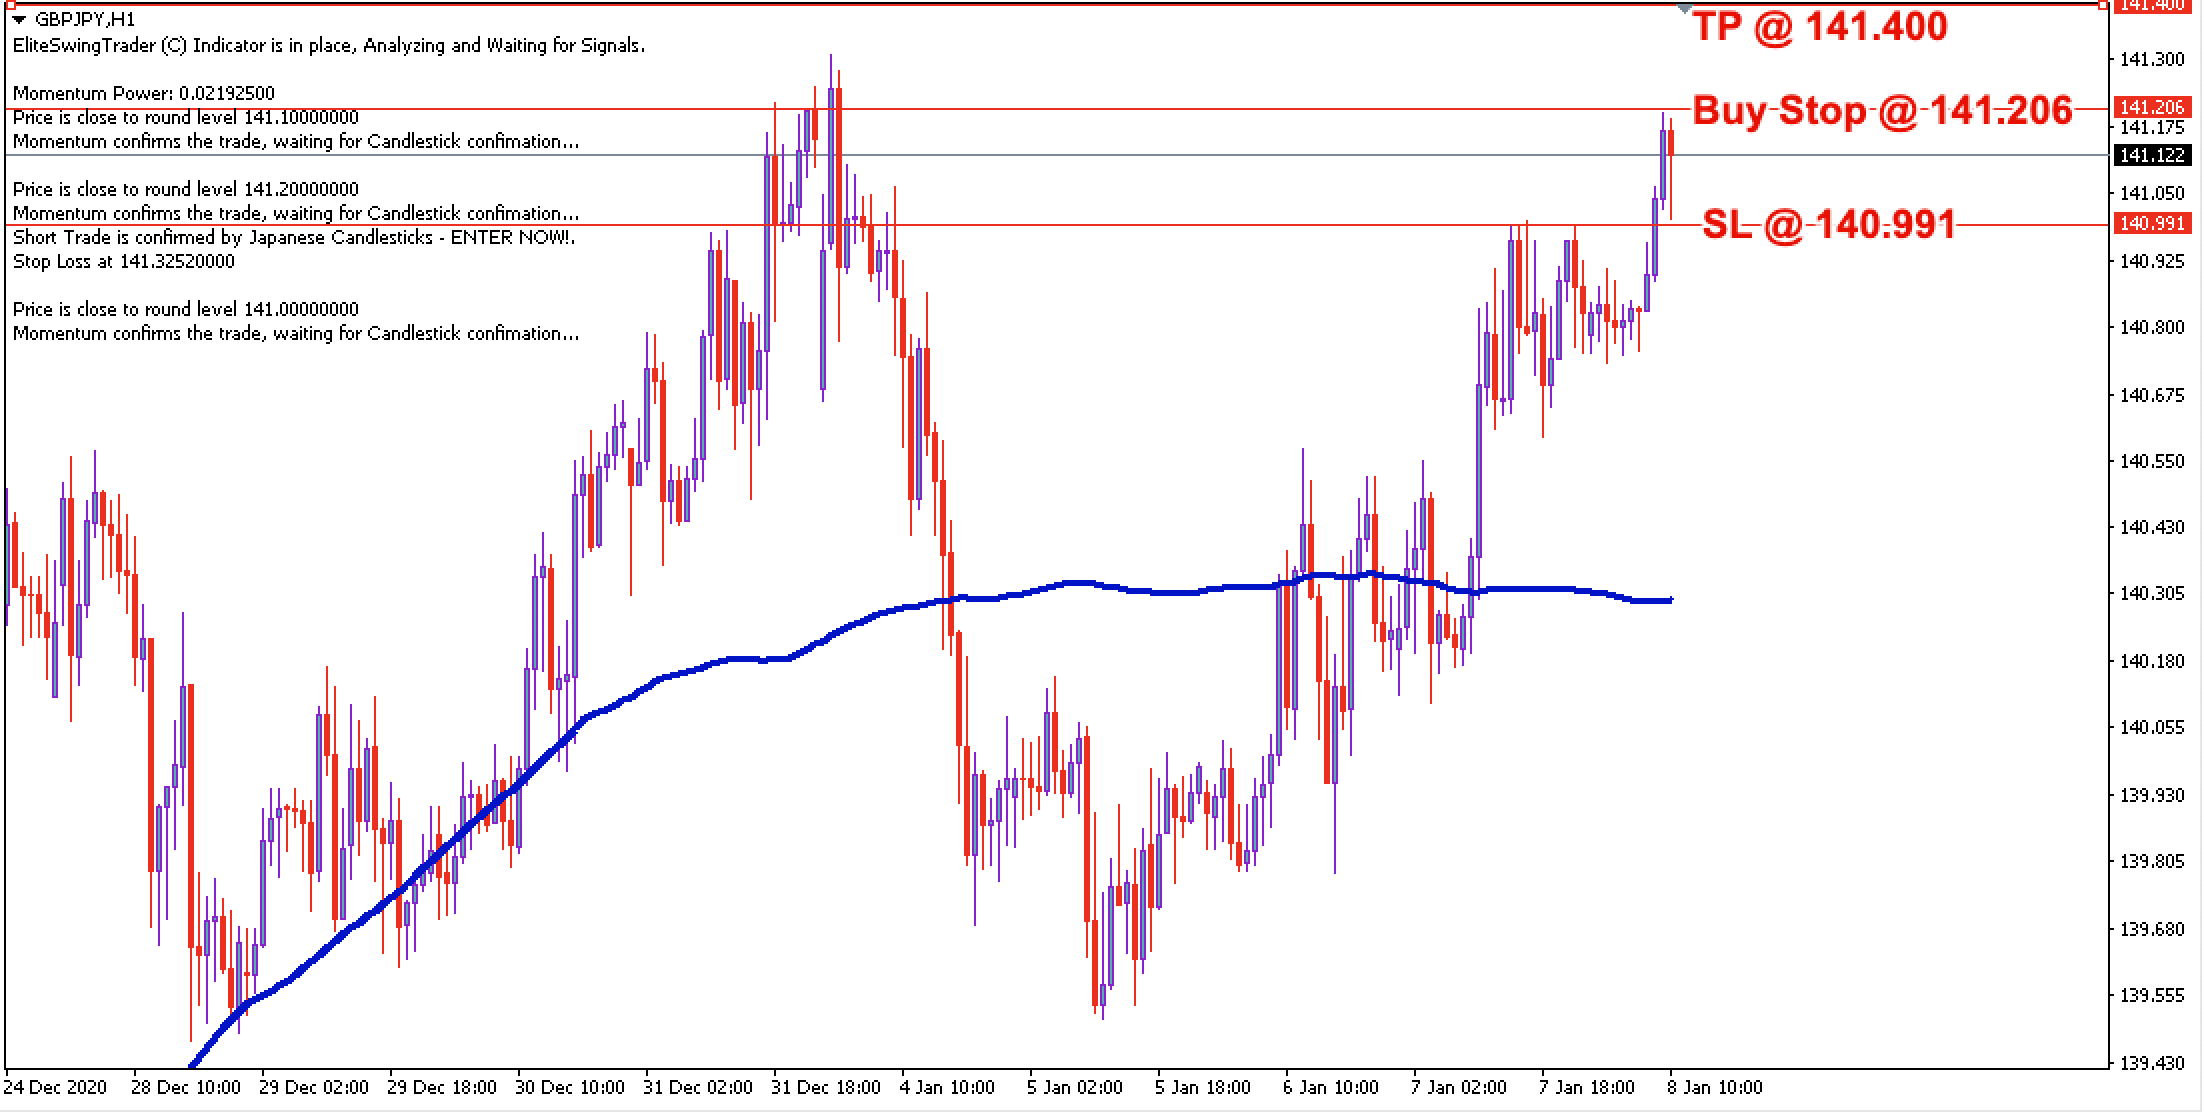 GBP/JPY Daily Price Forecast - 8th Jan 2021